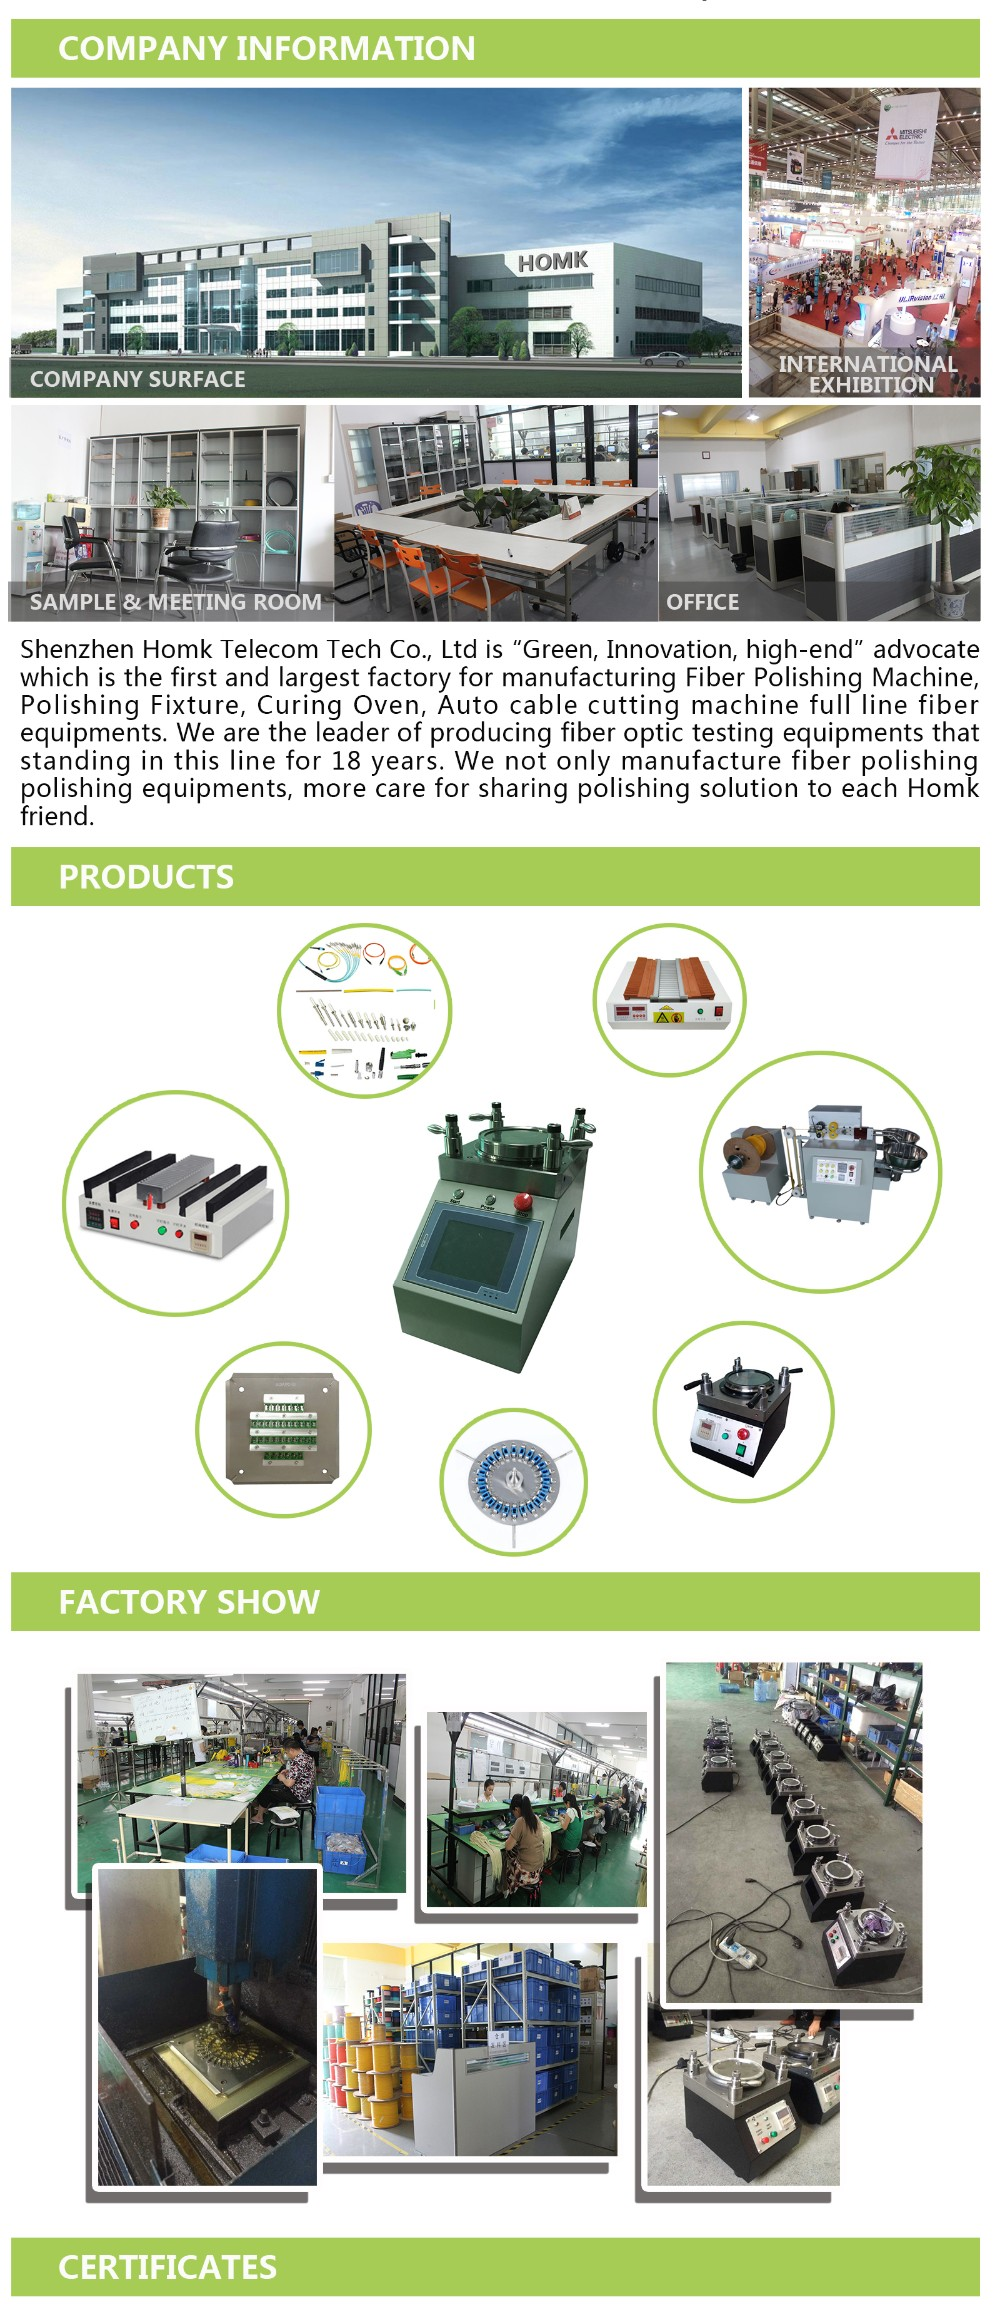 Fiber Optic Polishing Machine with Fiber Polishing Fixture